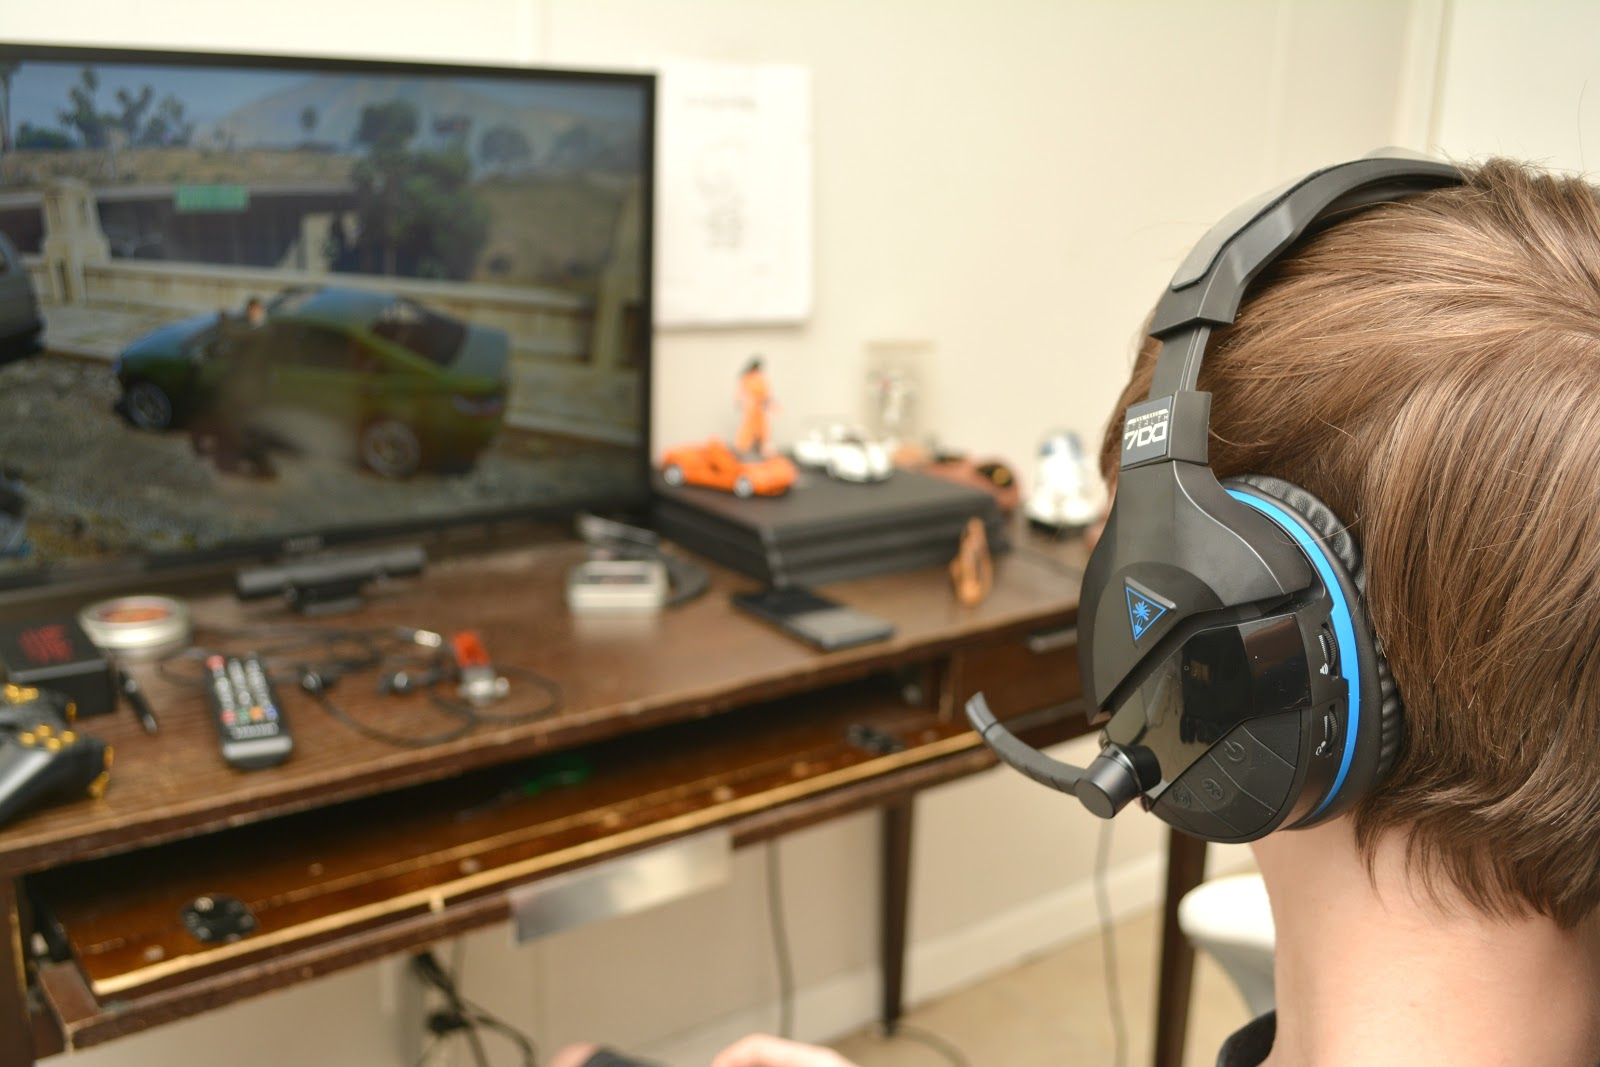 c1c4ba39d4a ... gaming headsets in the past, you know that one with immersive surround  sound can easy run you $200 and up, which is why the Turtle Beach Stealth  700 ...